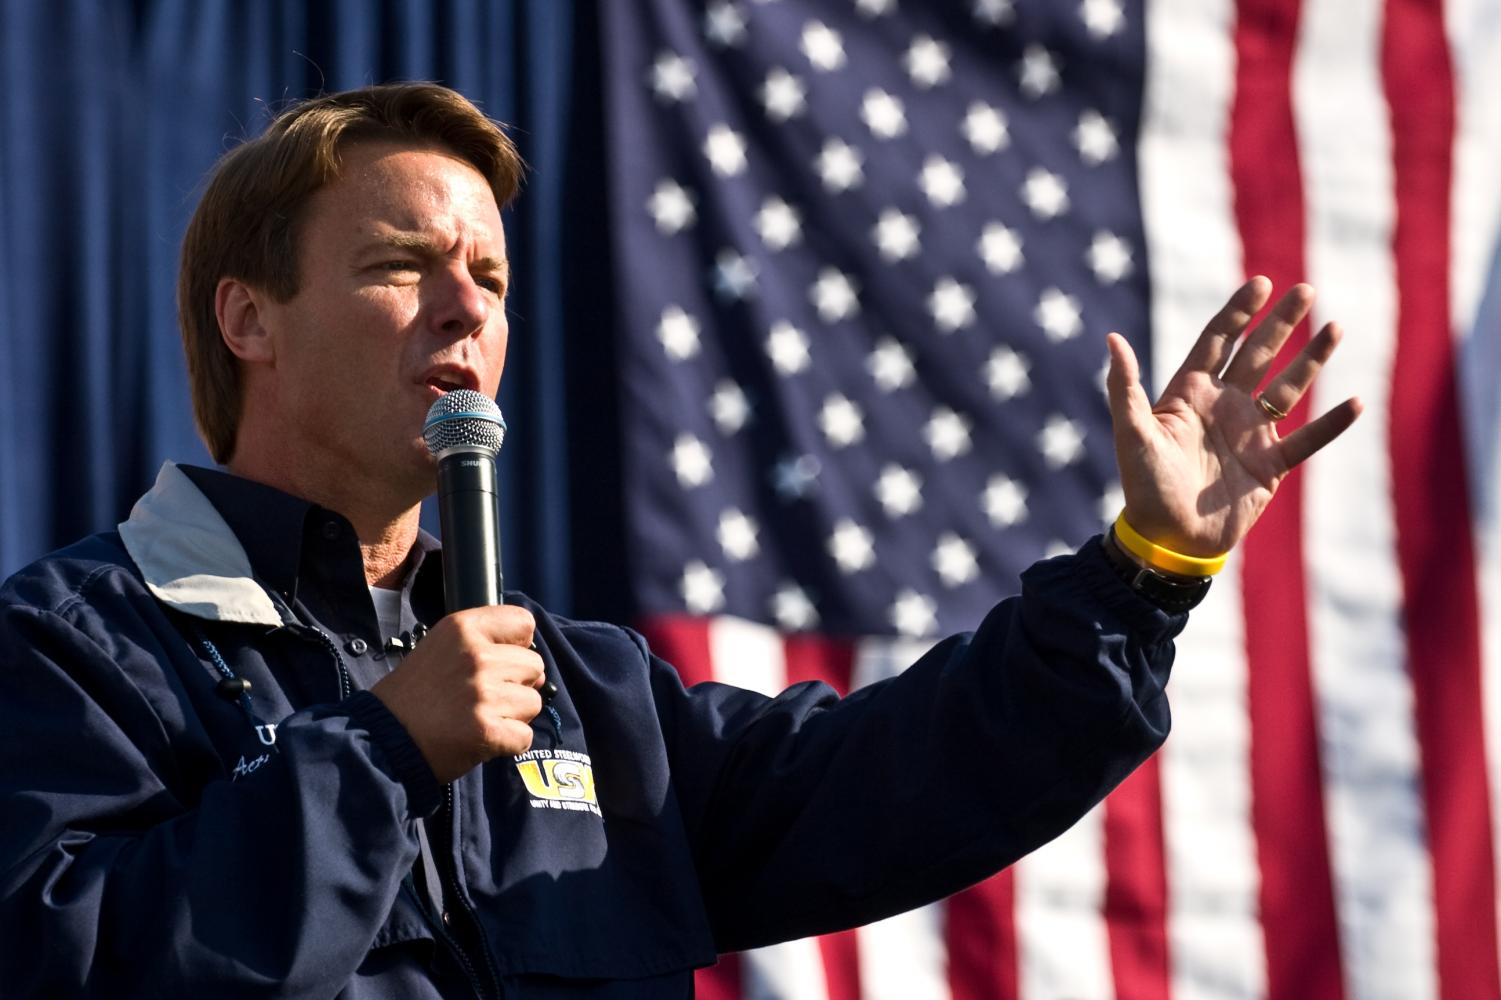 Campaigning for president, Democratic nominee John Edwards delivers a campaign speech. Although he lost the election, his campaign was very popular, leaving him in second place behind Barack Obama.